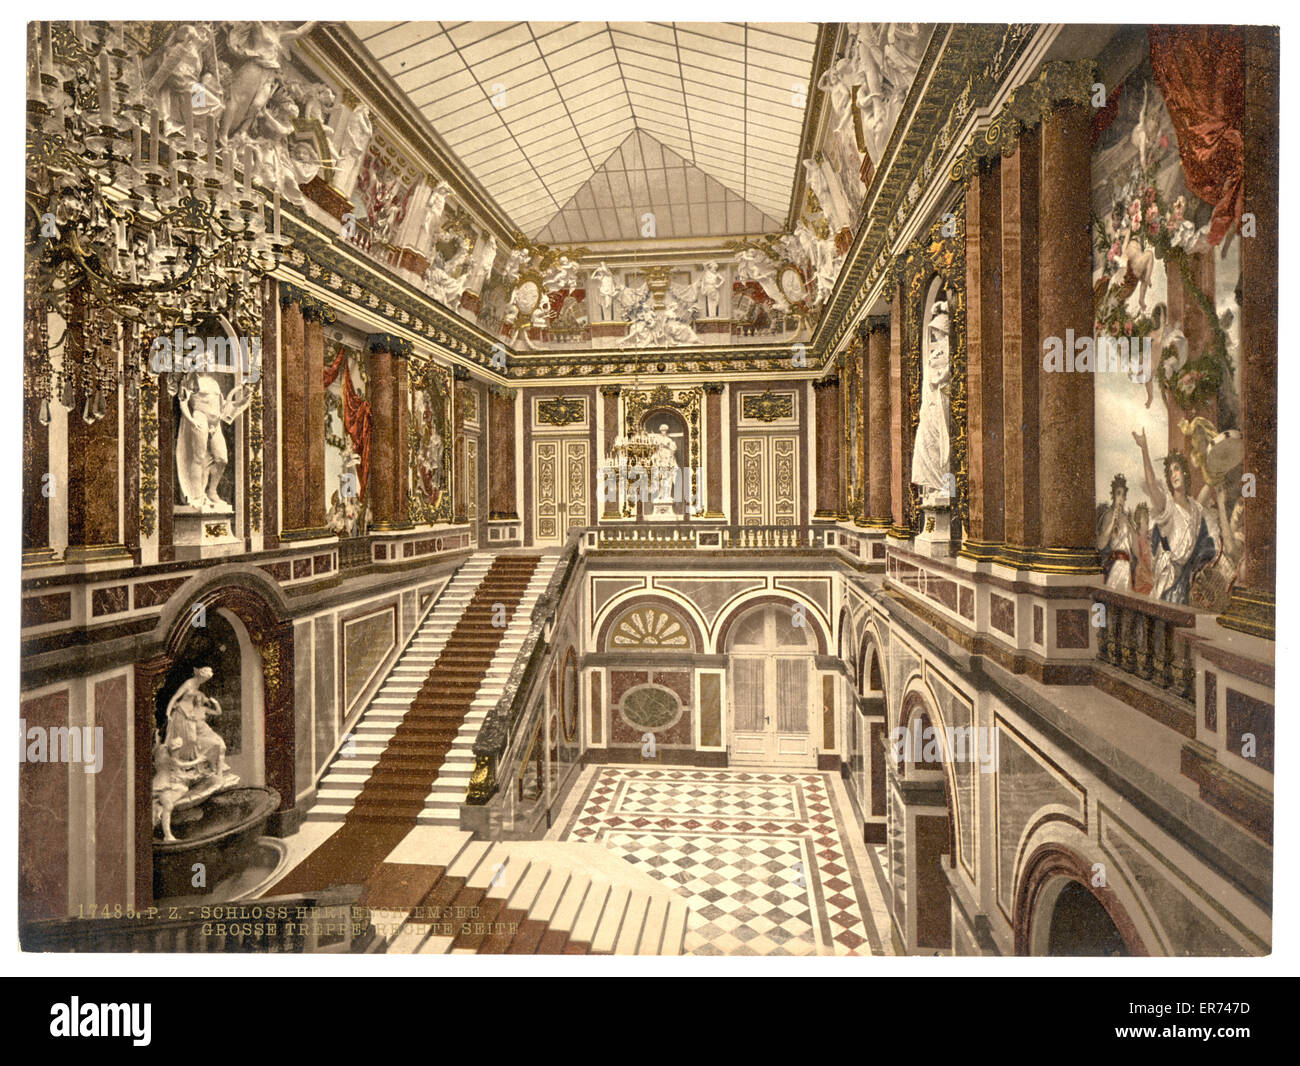 Main stairway, Herrenchiemsee Castle, Upper Bavaria, Germany. Date between ca. 1890 and ca. 1900. - Stock Image